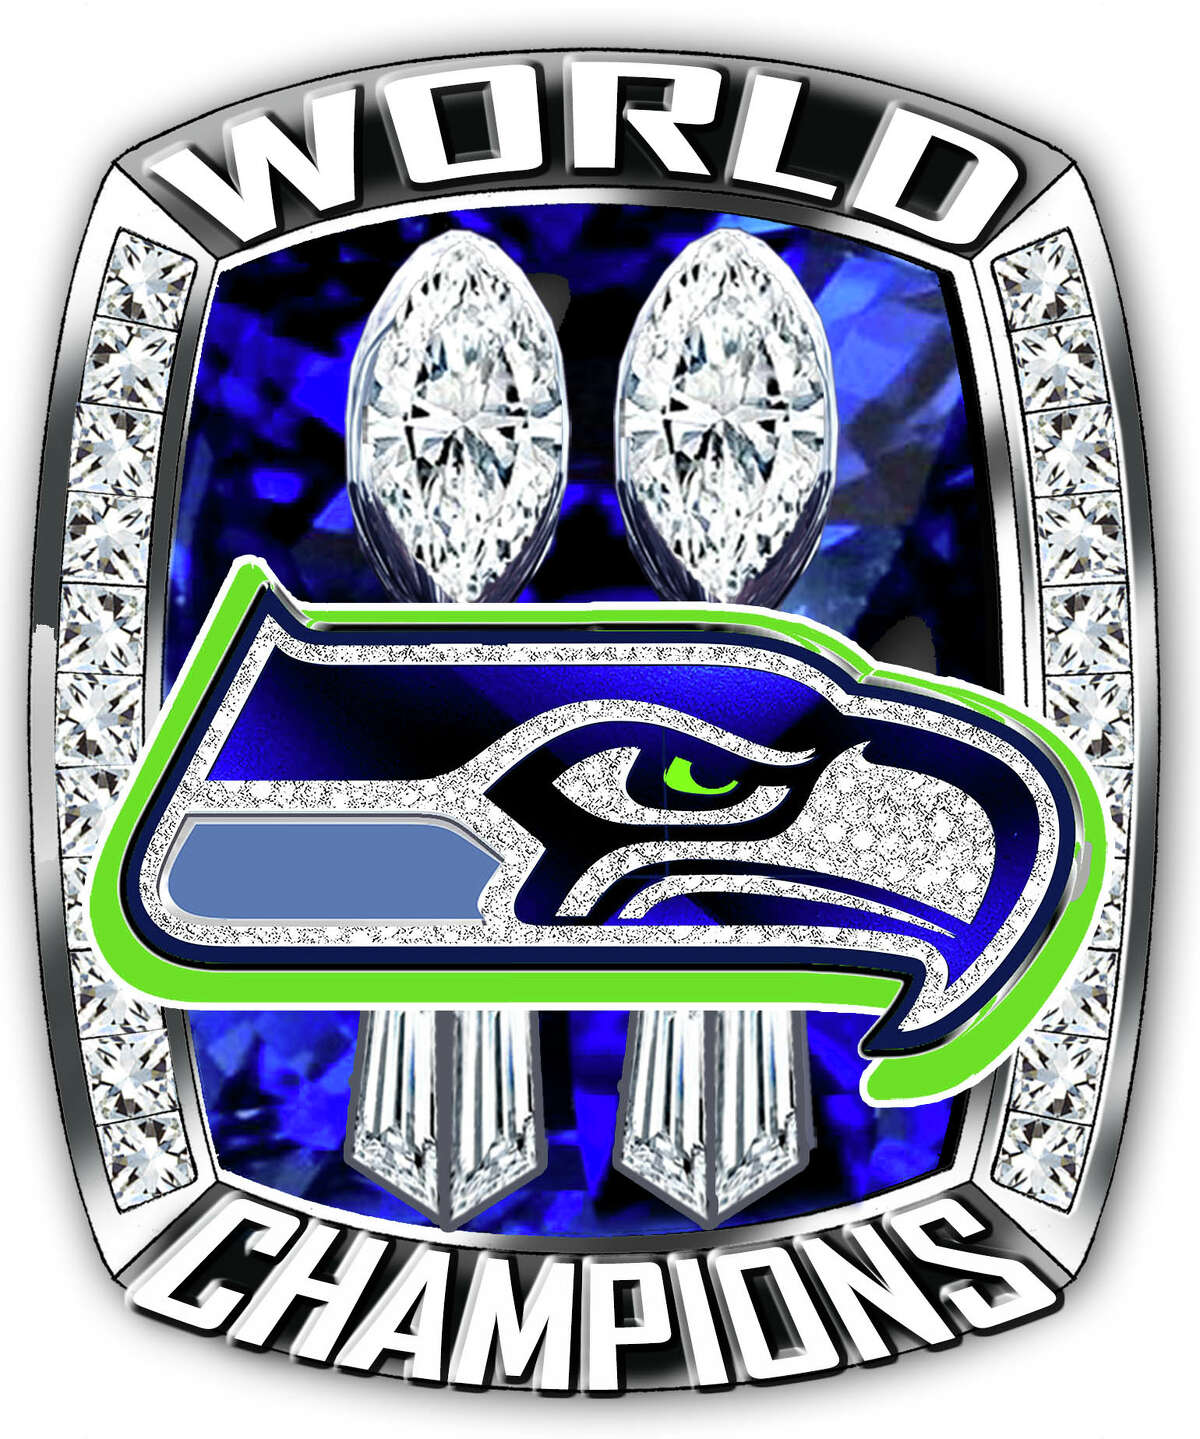 One of Diamond Cutters International's two proposed ring designs if the Seattle Seahawks win the Super Bowl on Feb. 1, 2015.